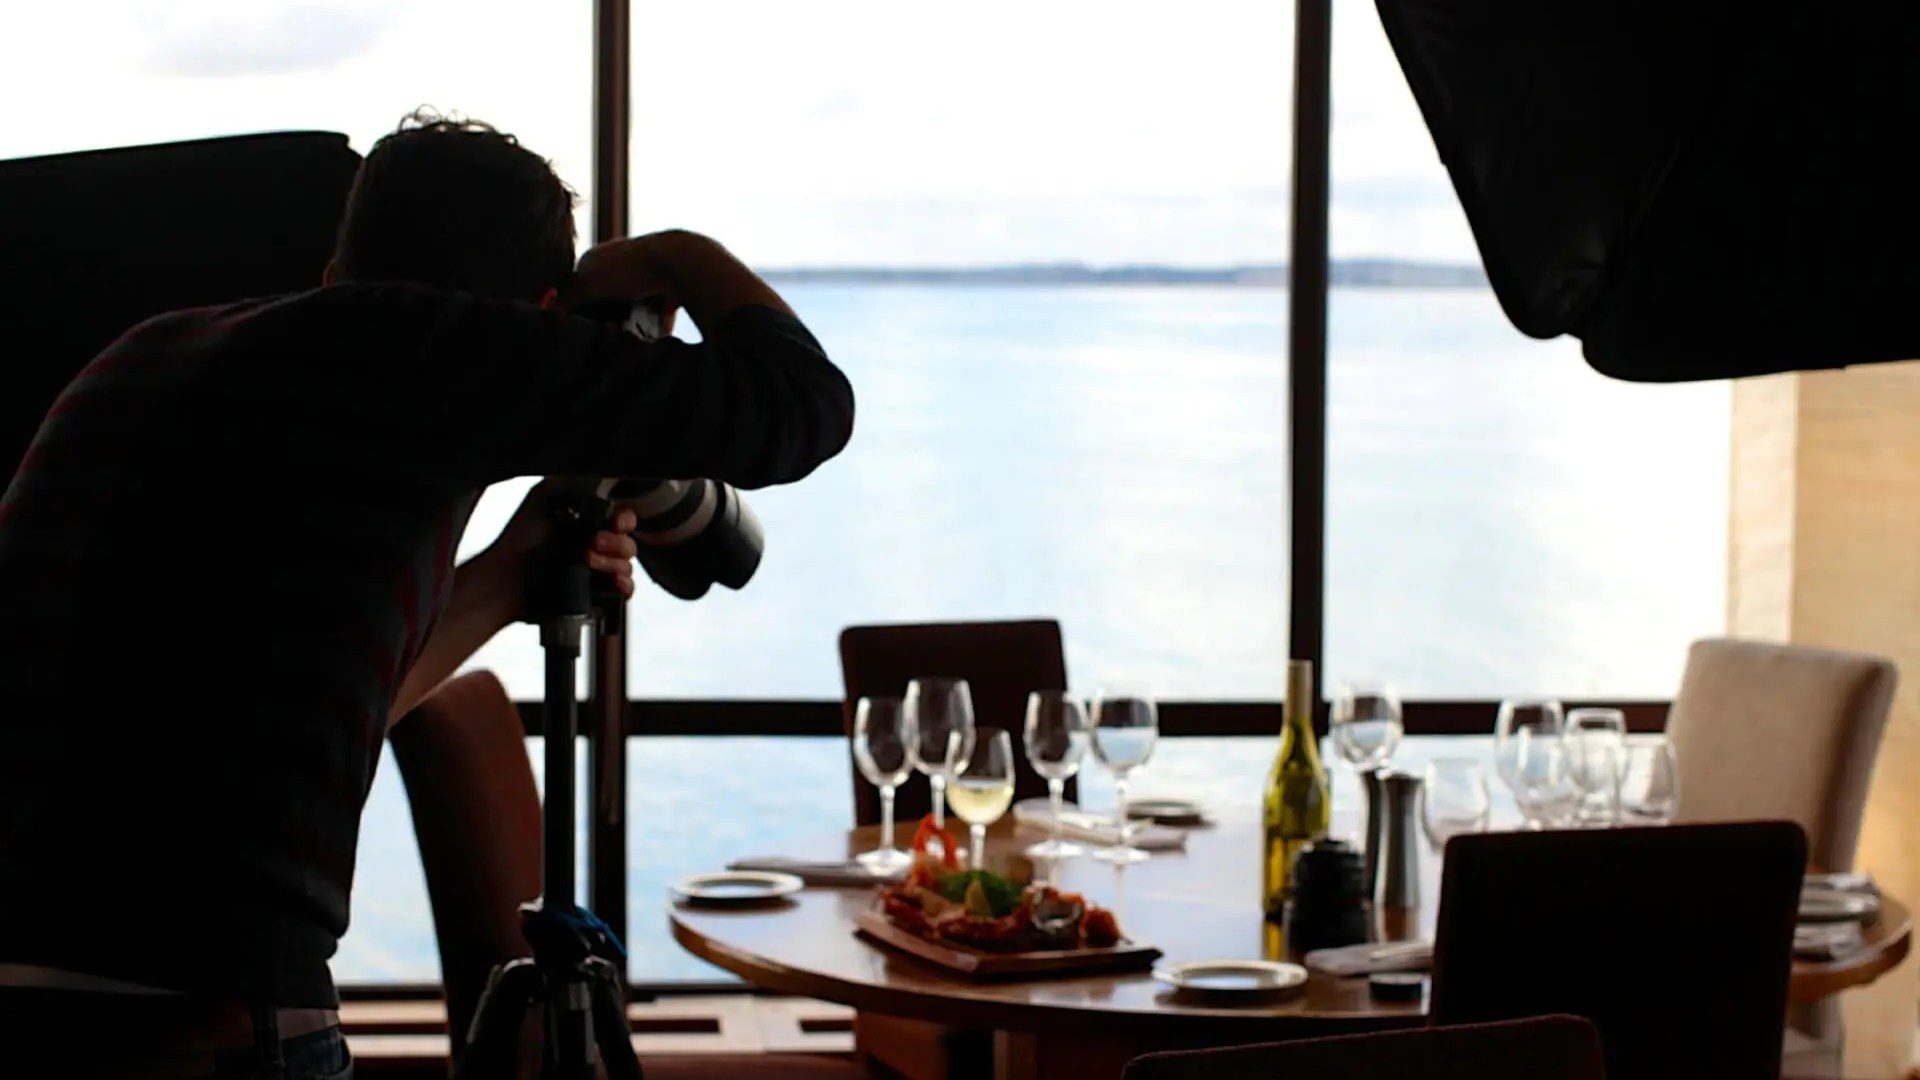 Getting started in food photography: A basic tool kit 1